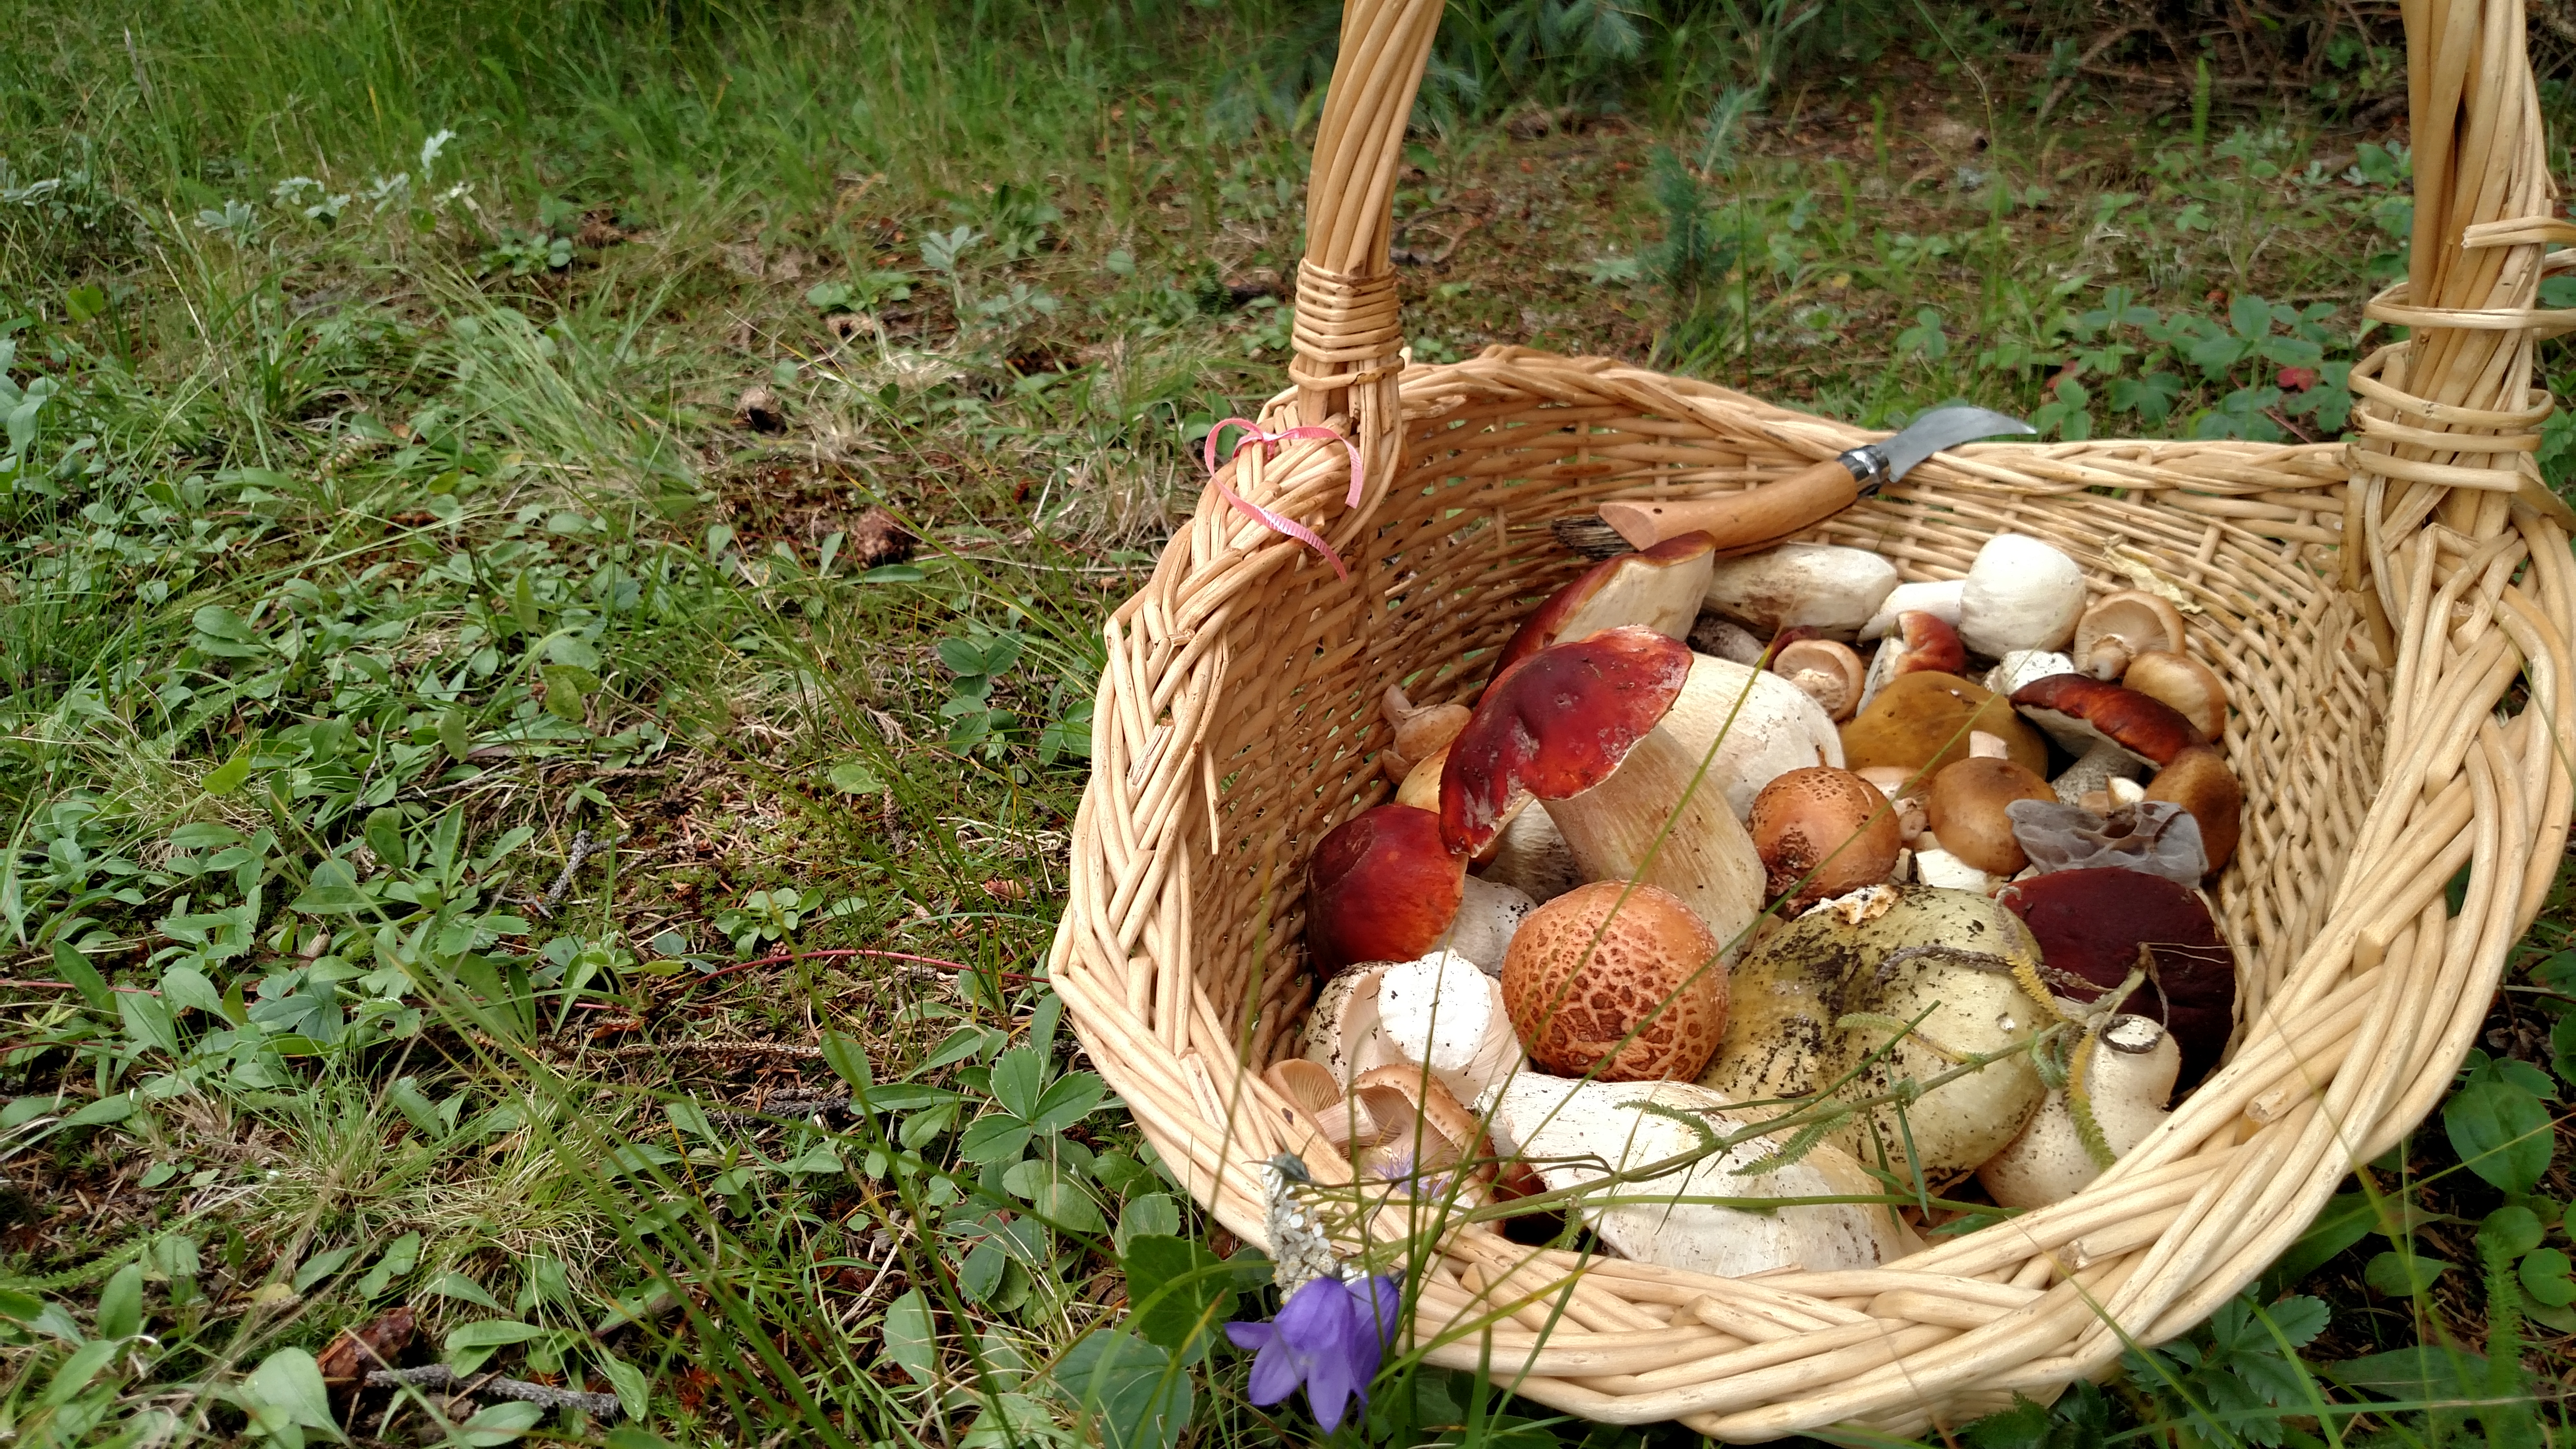 Basket of wild foraged mushrooms